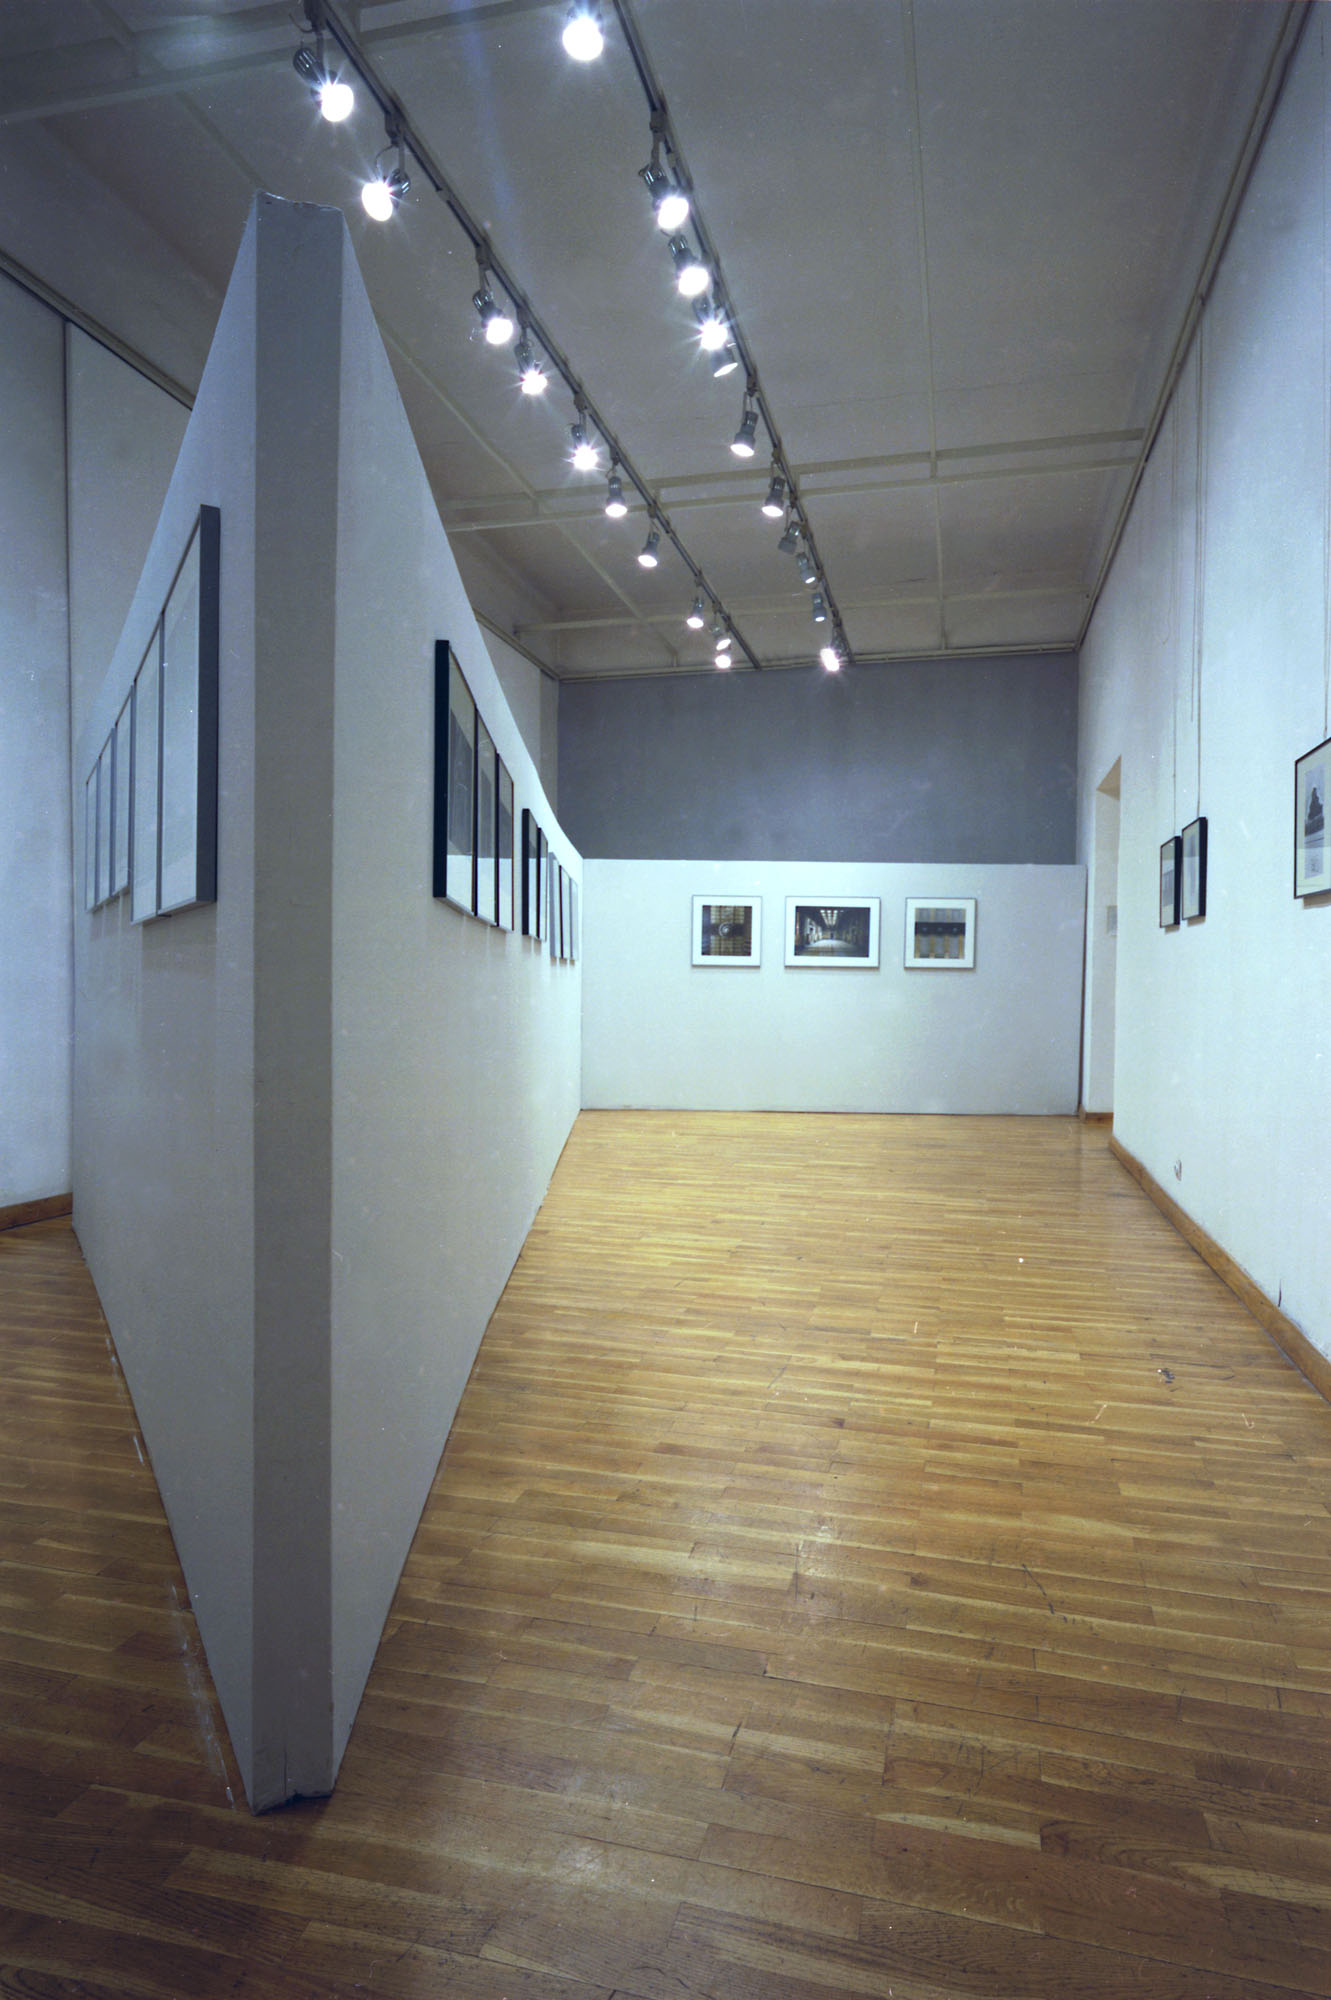 The <em>Photographs</em> exhibition